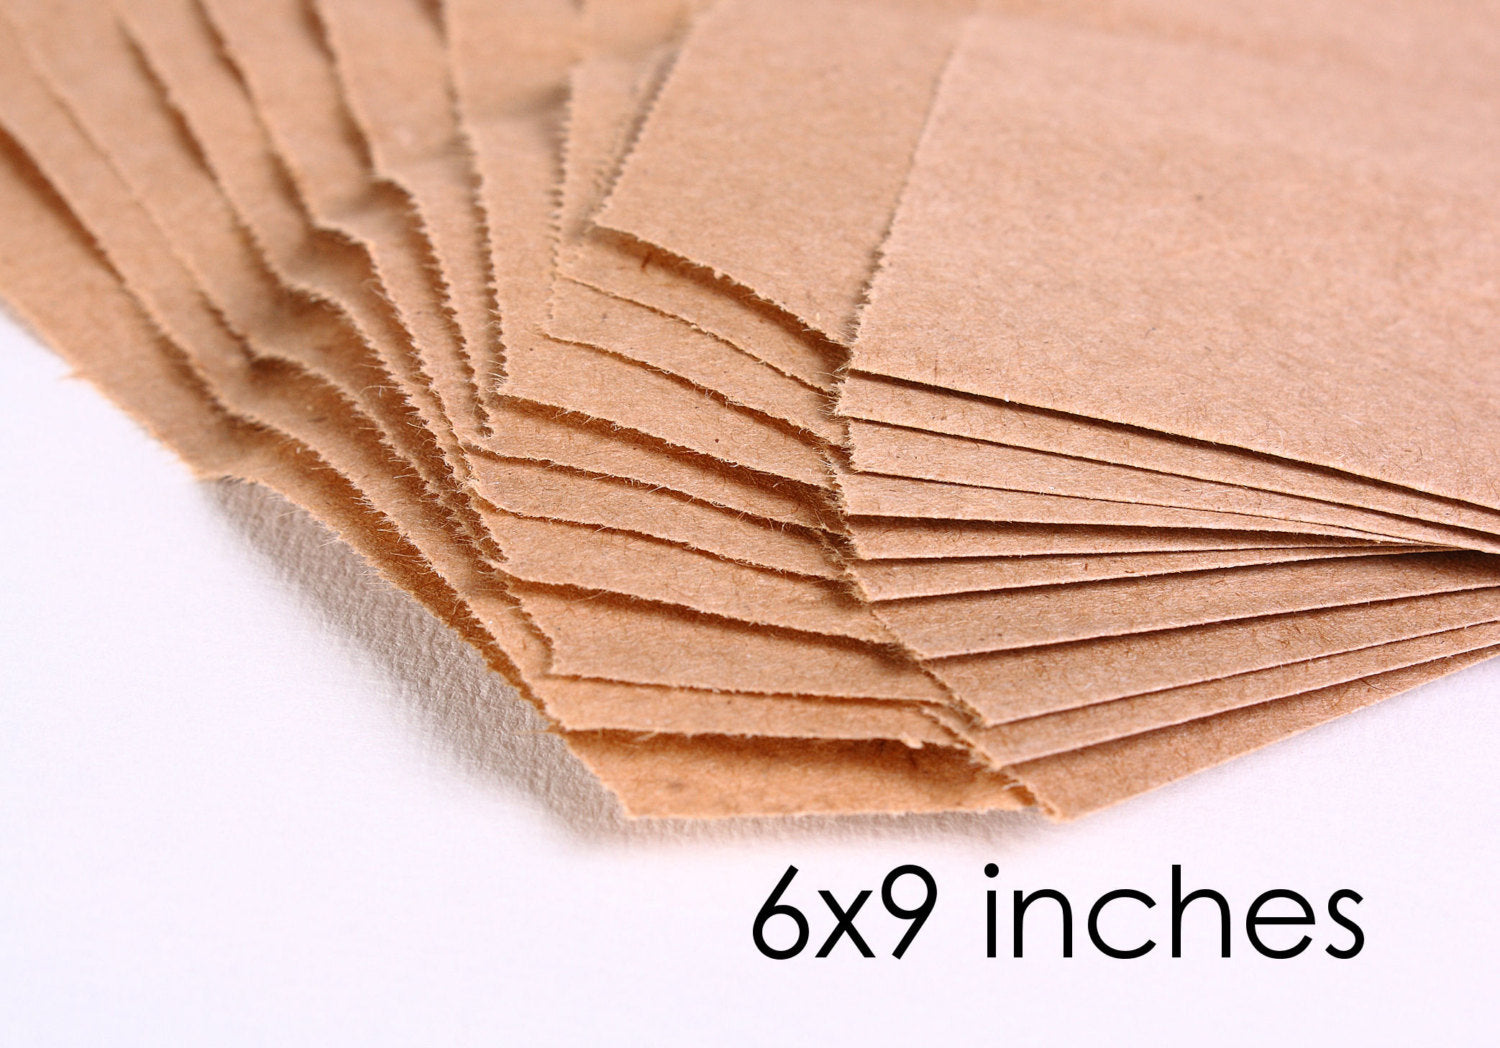 Kraft paper bags - 6 x 9 inches - 15 bags (1161)